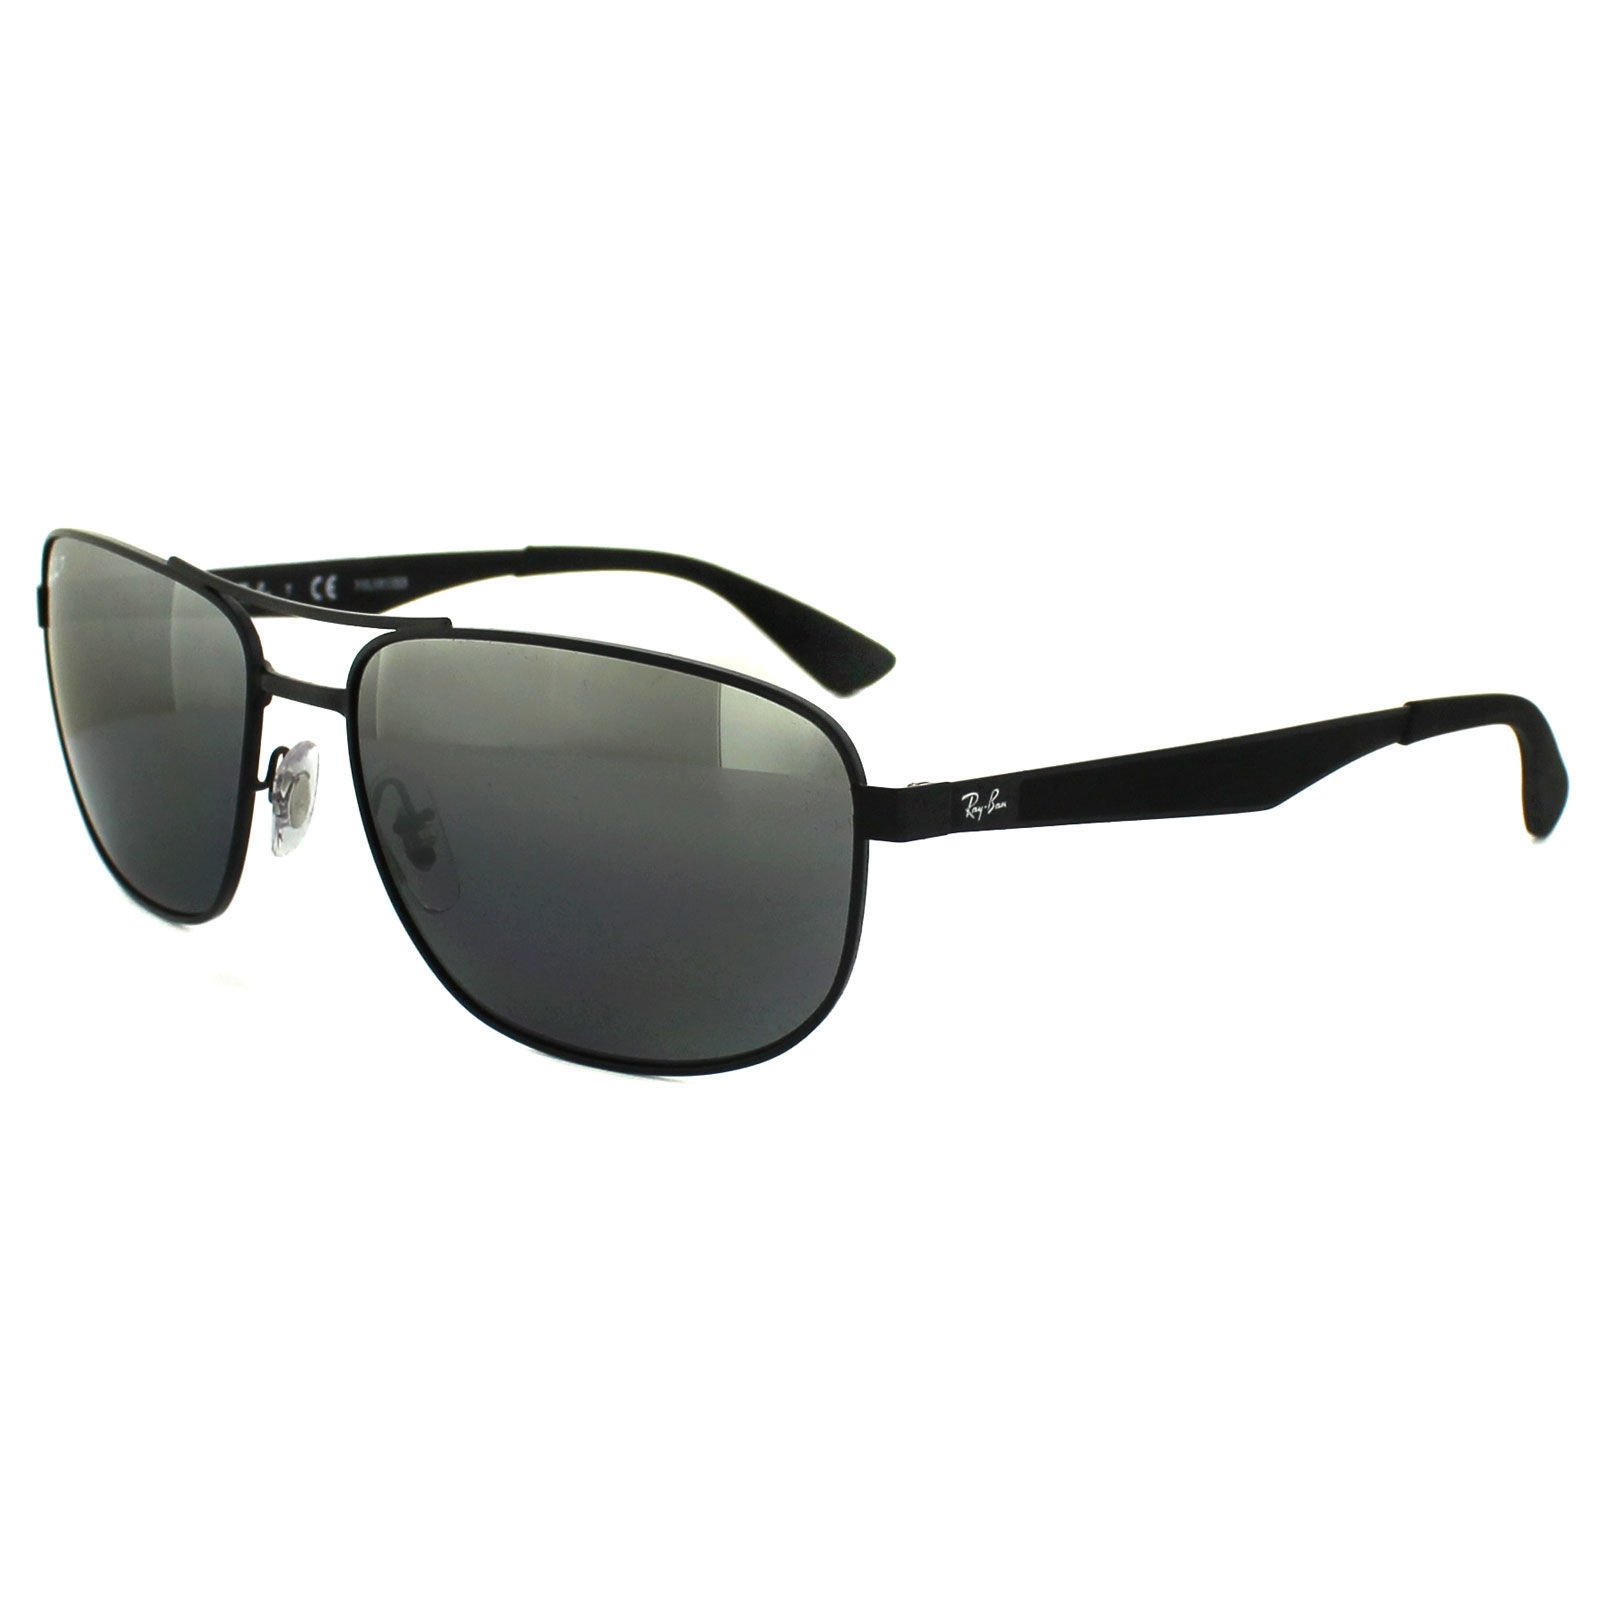 8b5b265674126 Sentinel Ray-Ban Sunglasses 3528 006 82 Matt Black Silver Mirror Polarized  61mm